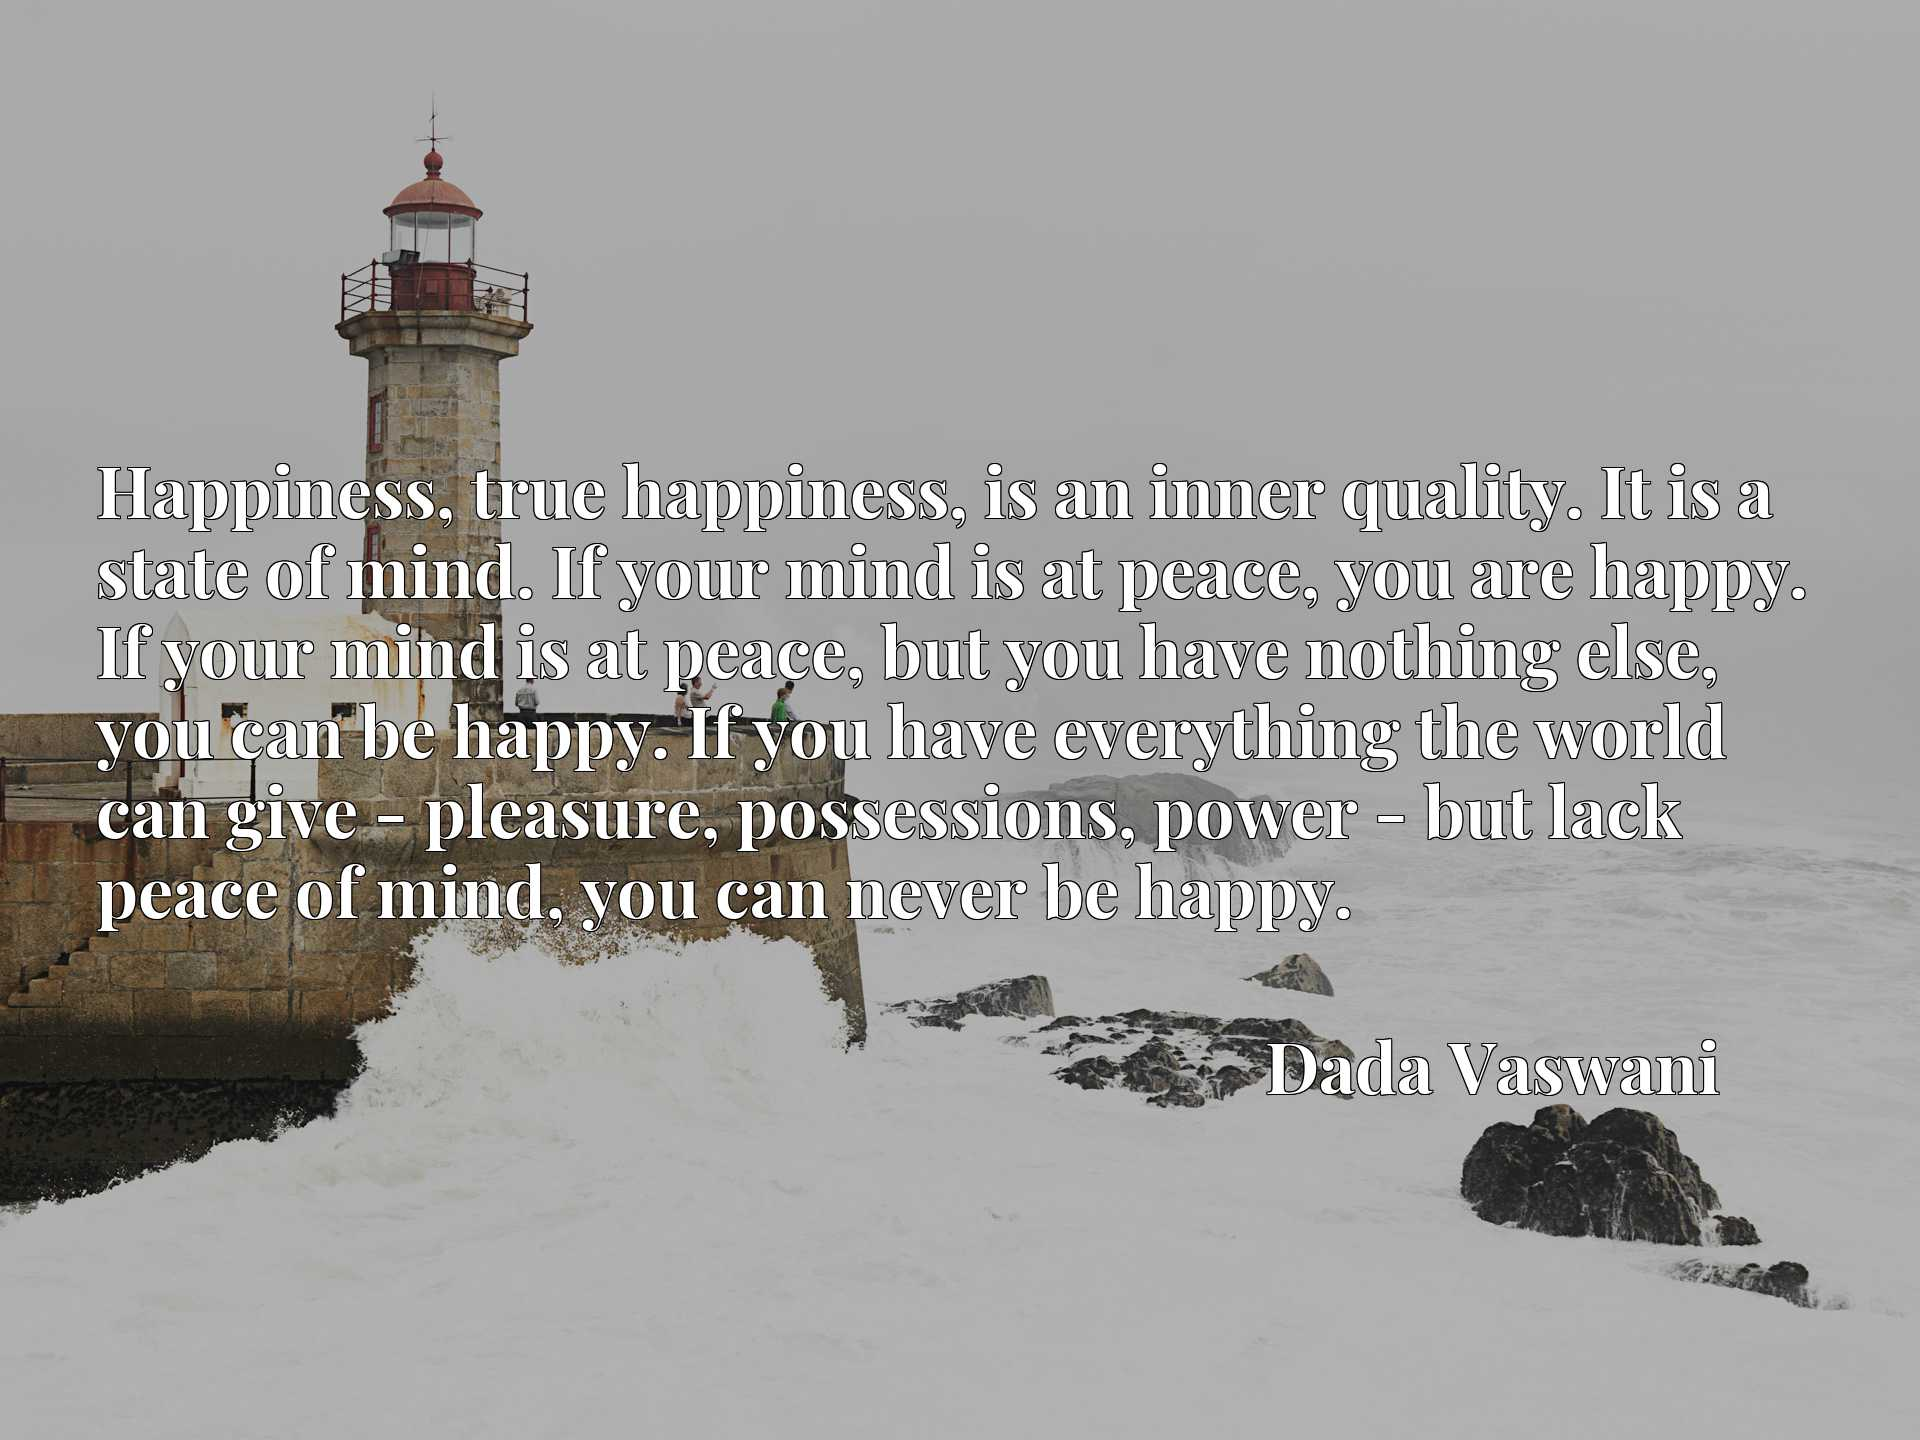 Quote Picture :Happiness, true happiness, is an inner quality. It is a state of mind. If your mind is at peace, you are happy. If your mind is at peace, but you have nothing else, you can be happy. If you have everything the world can give - pleasure, possessions, power - but lack peace of mind, you can never be happy.